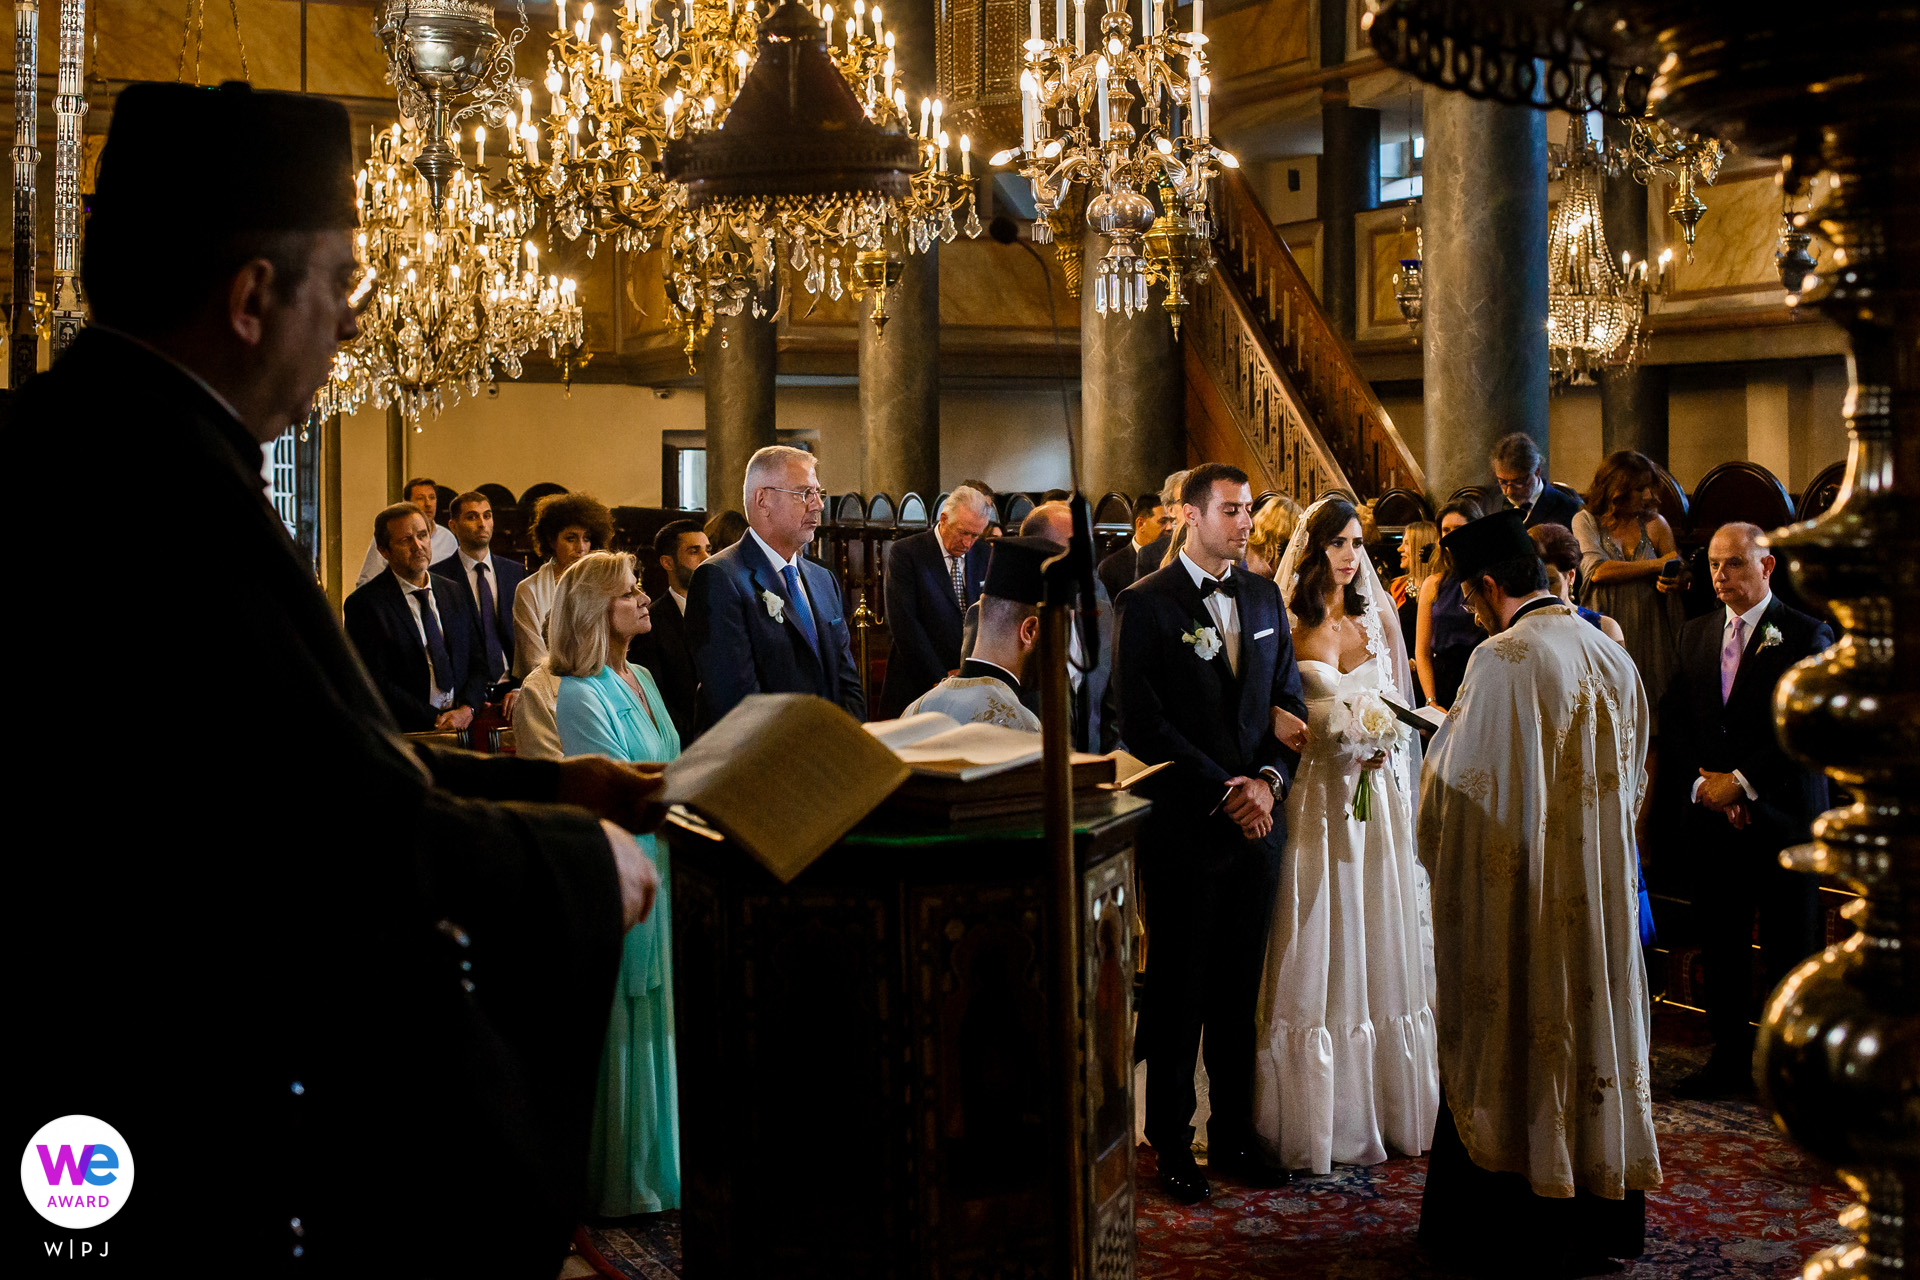 Greek Orthodox Patriarchate Church, Istanbul, Turkey Elopement Photo Story | in Istanbul, they decided to organize a wedding ceremony in the church in front of a small group from their close friends and family